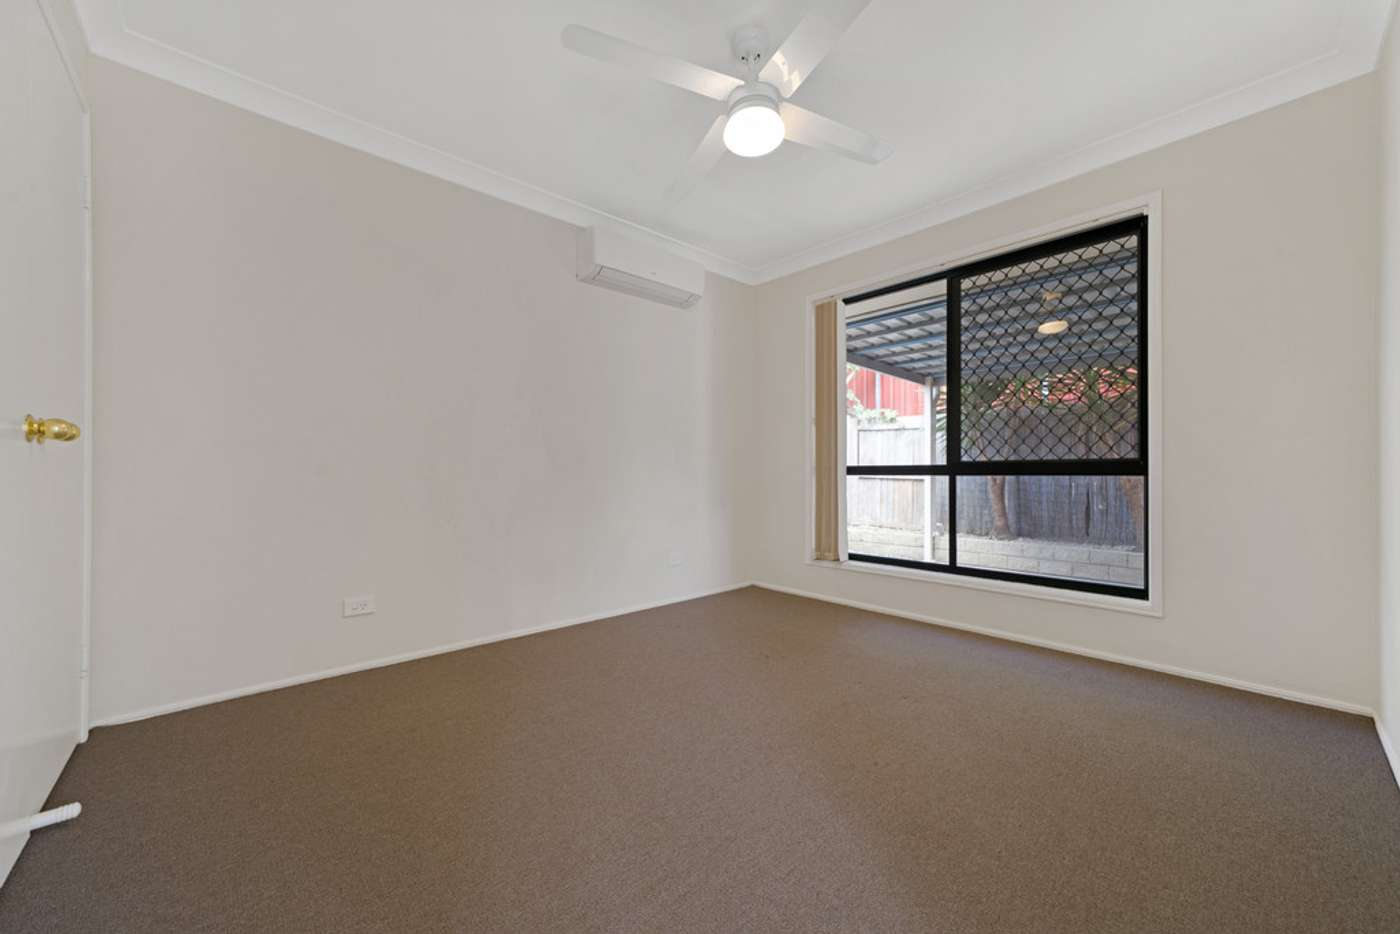 Sixth view of Homely house listing, 15/7 Billabong Drive, Crestmead QLD 4132